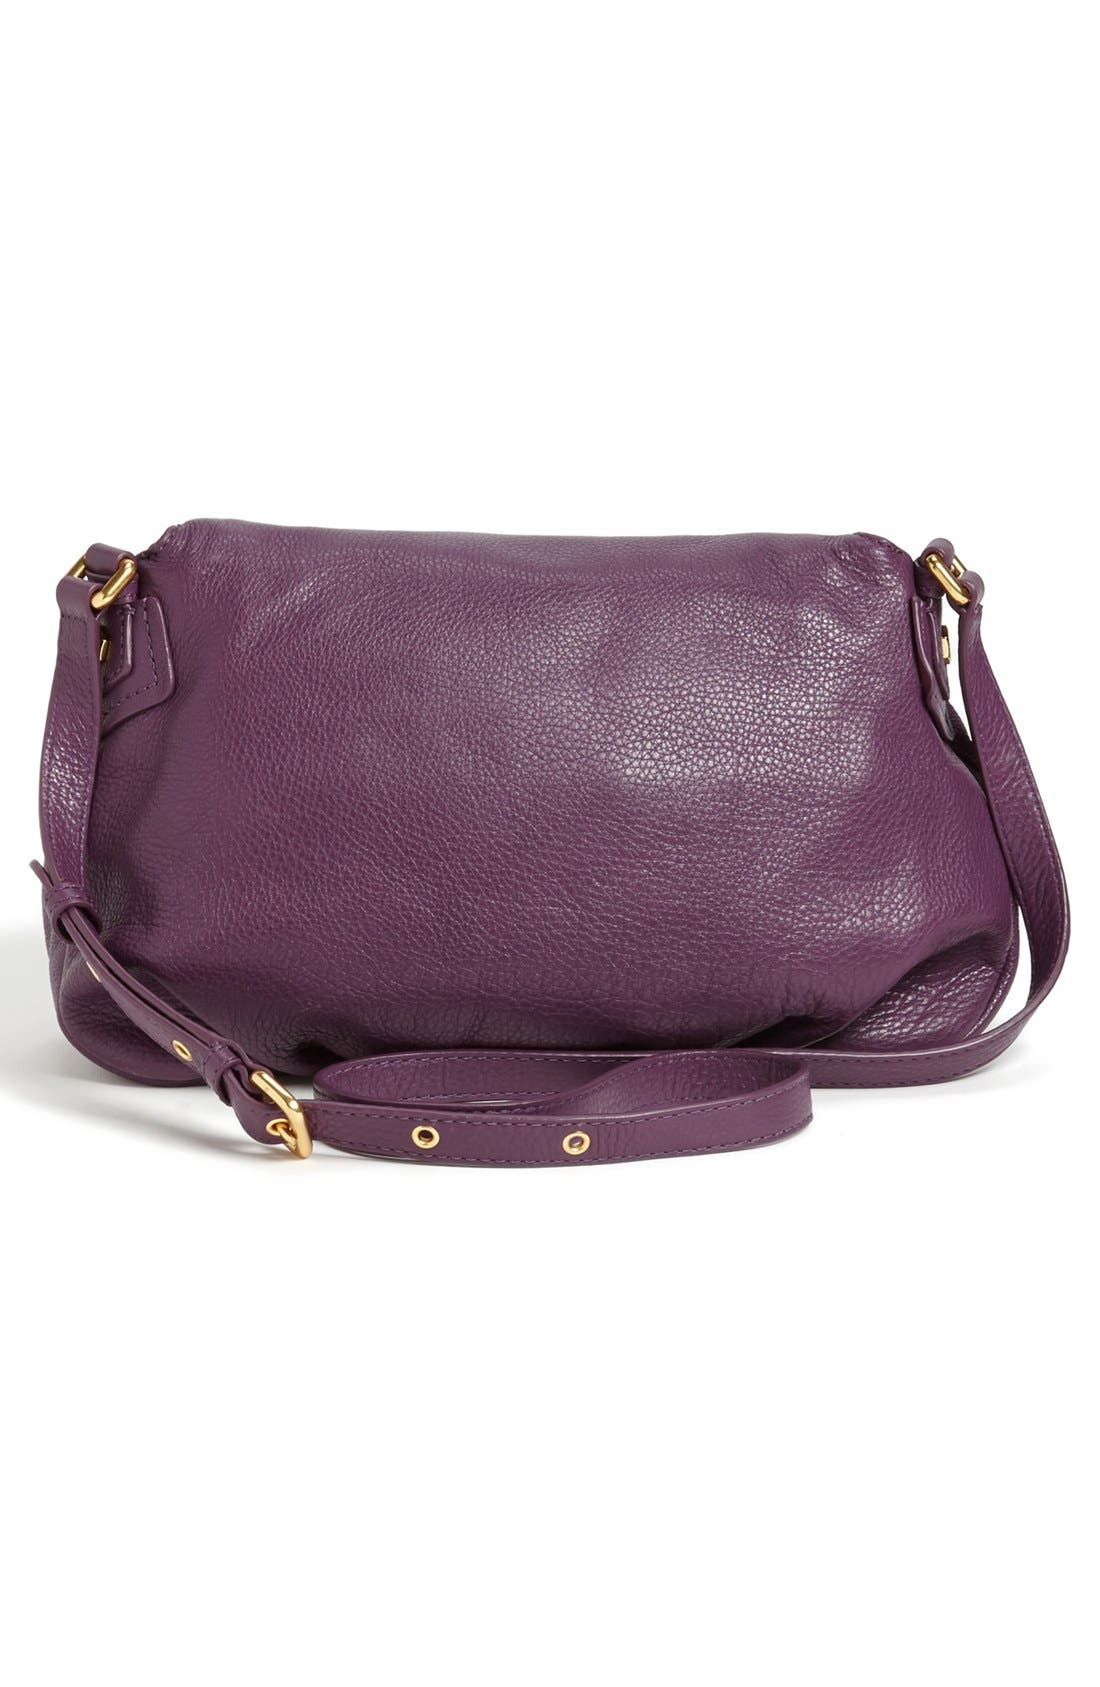 MARC BY MARC JACOBS 'Classic Q - Natasha' Crossbody Bag,                             Alternate thumbnail 26, color,